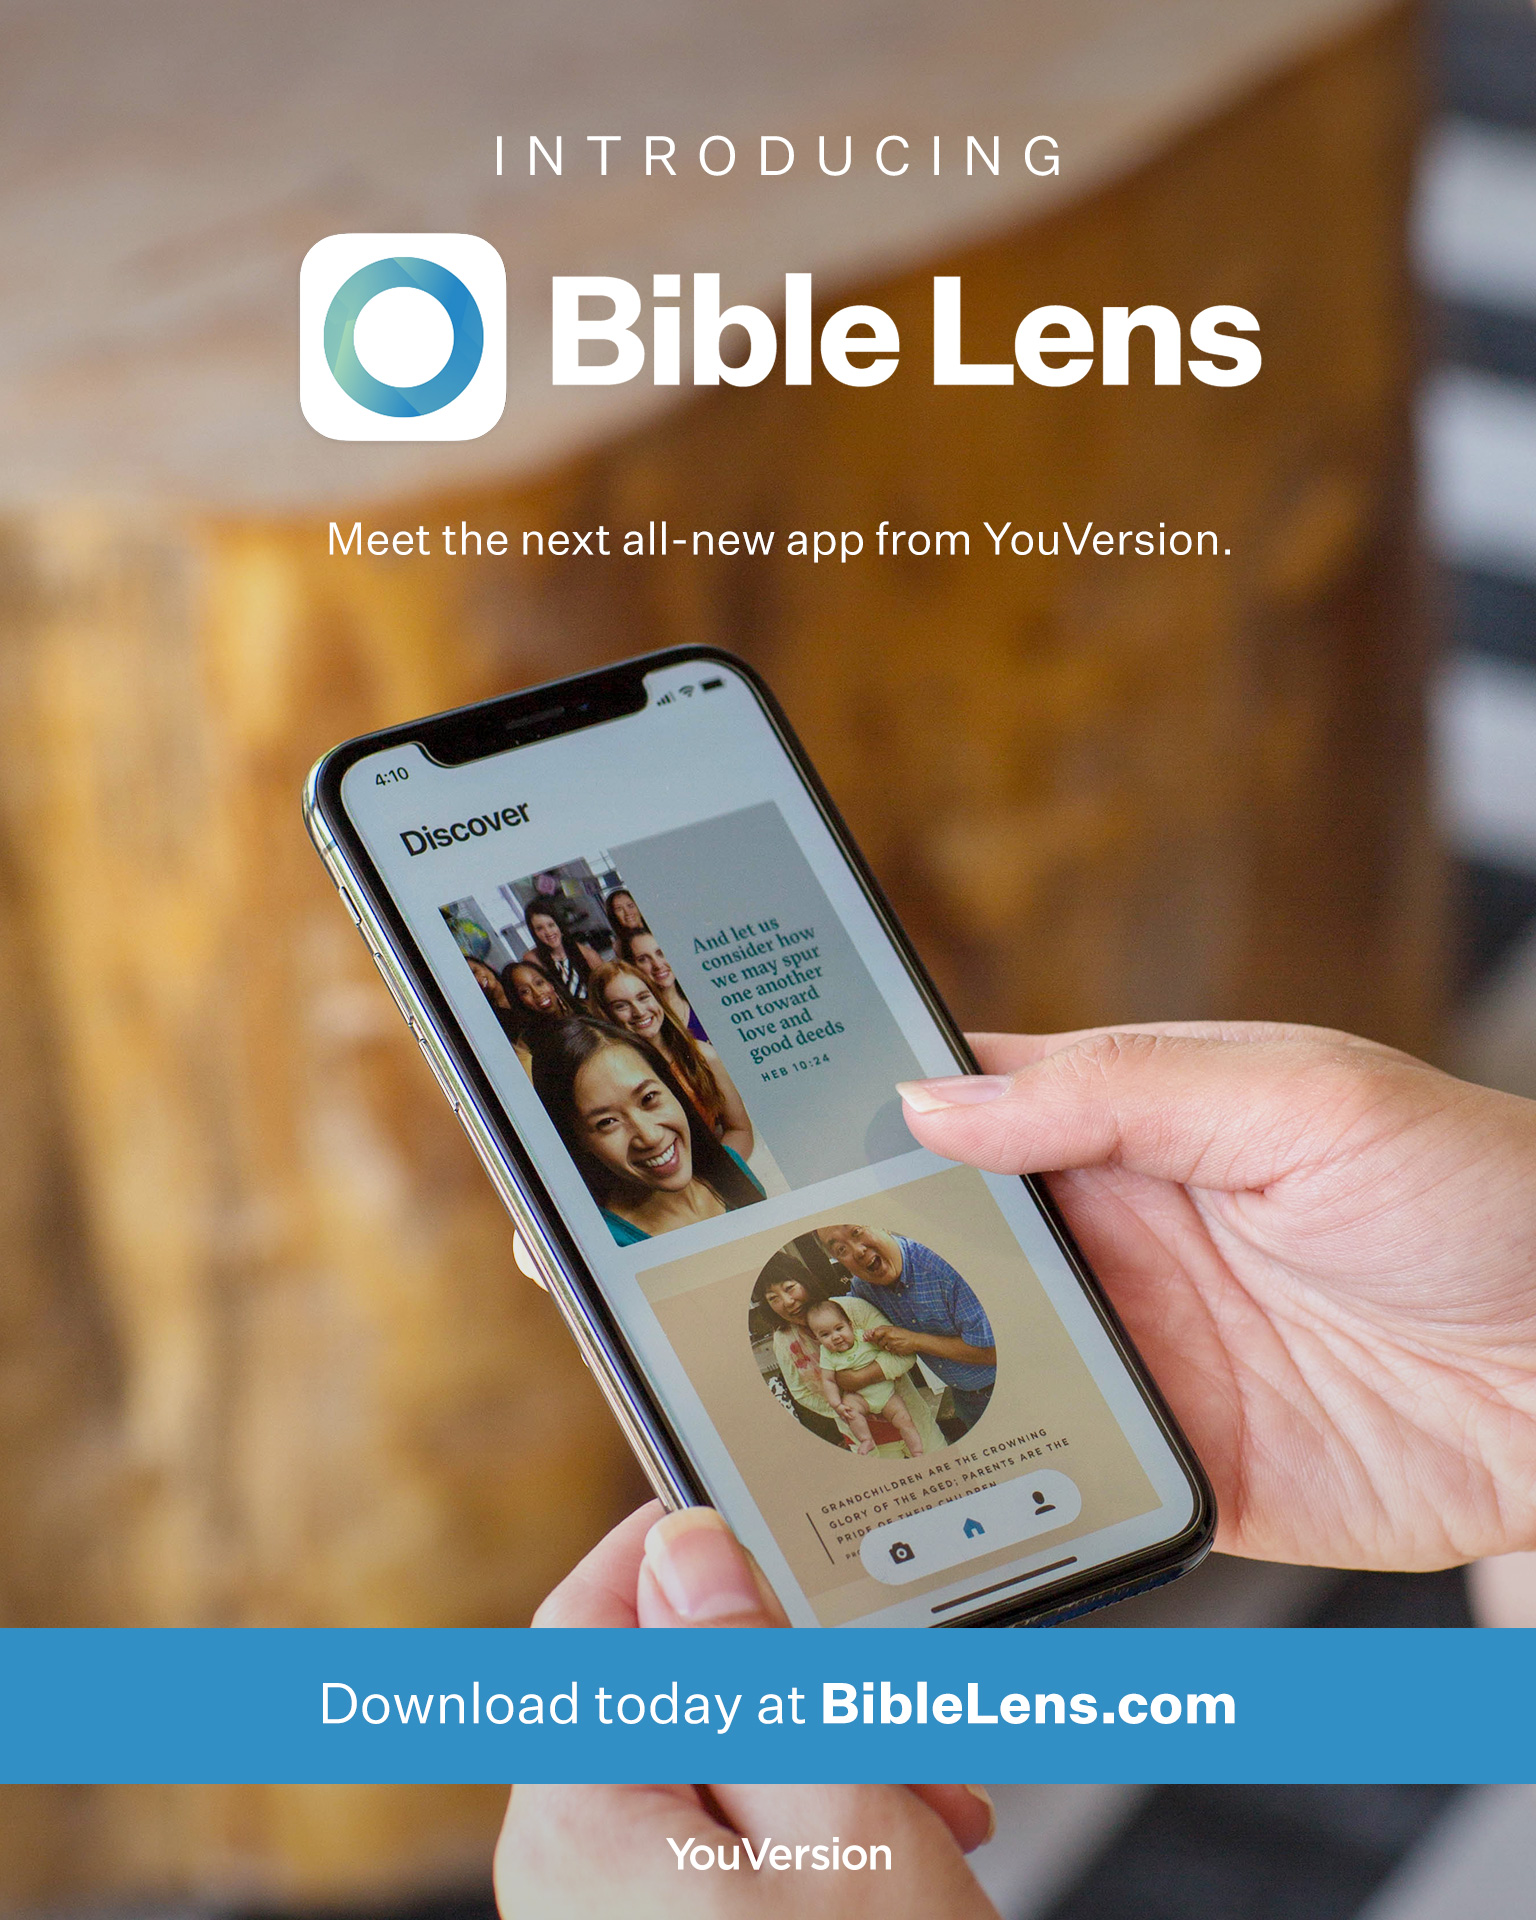 Creators of the YouVersion Bible App celebrate launch of new